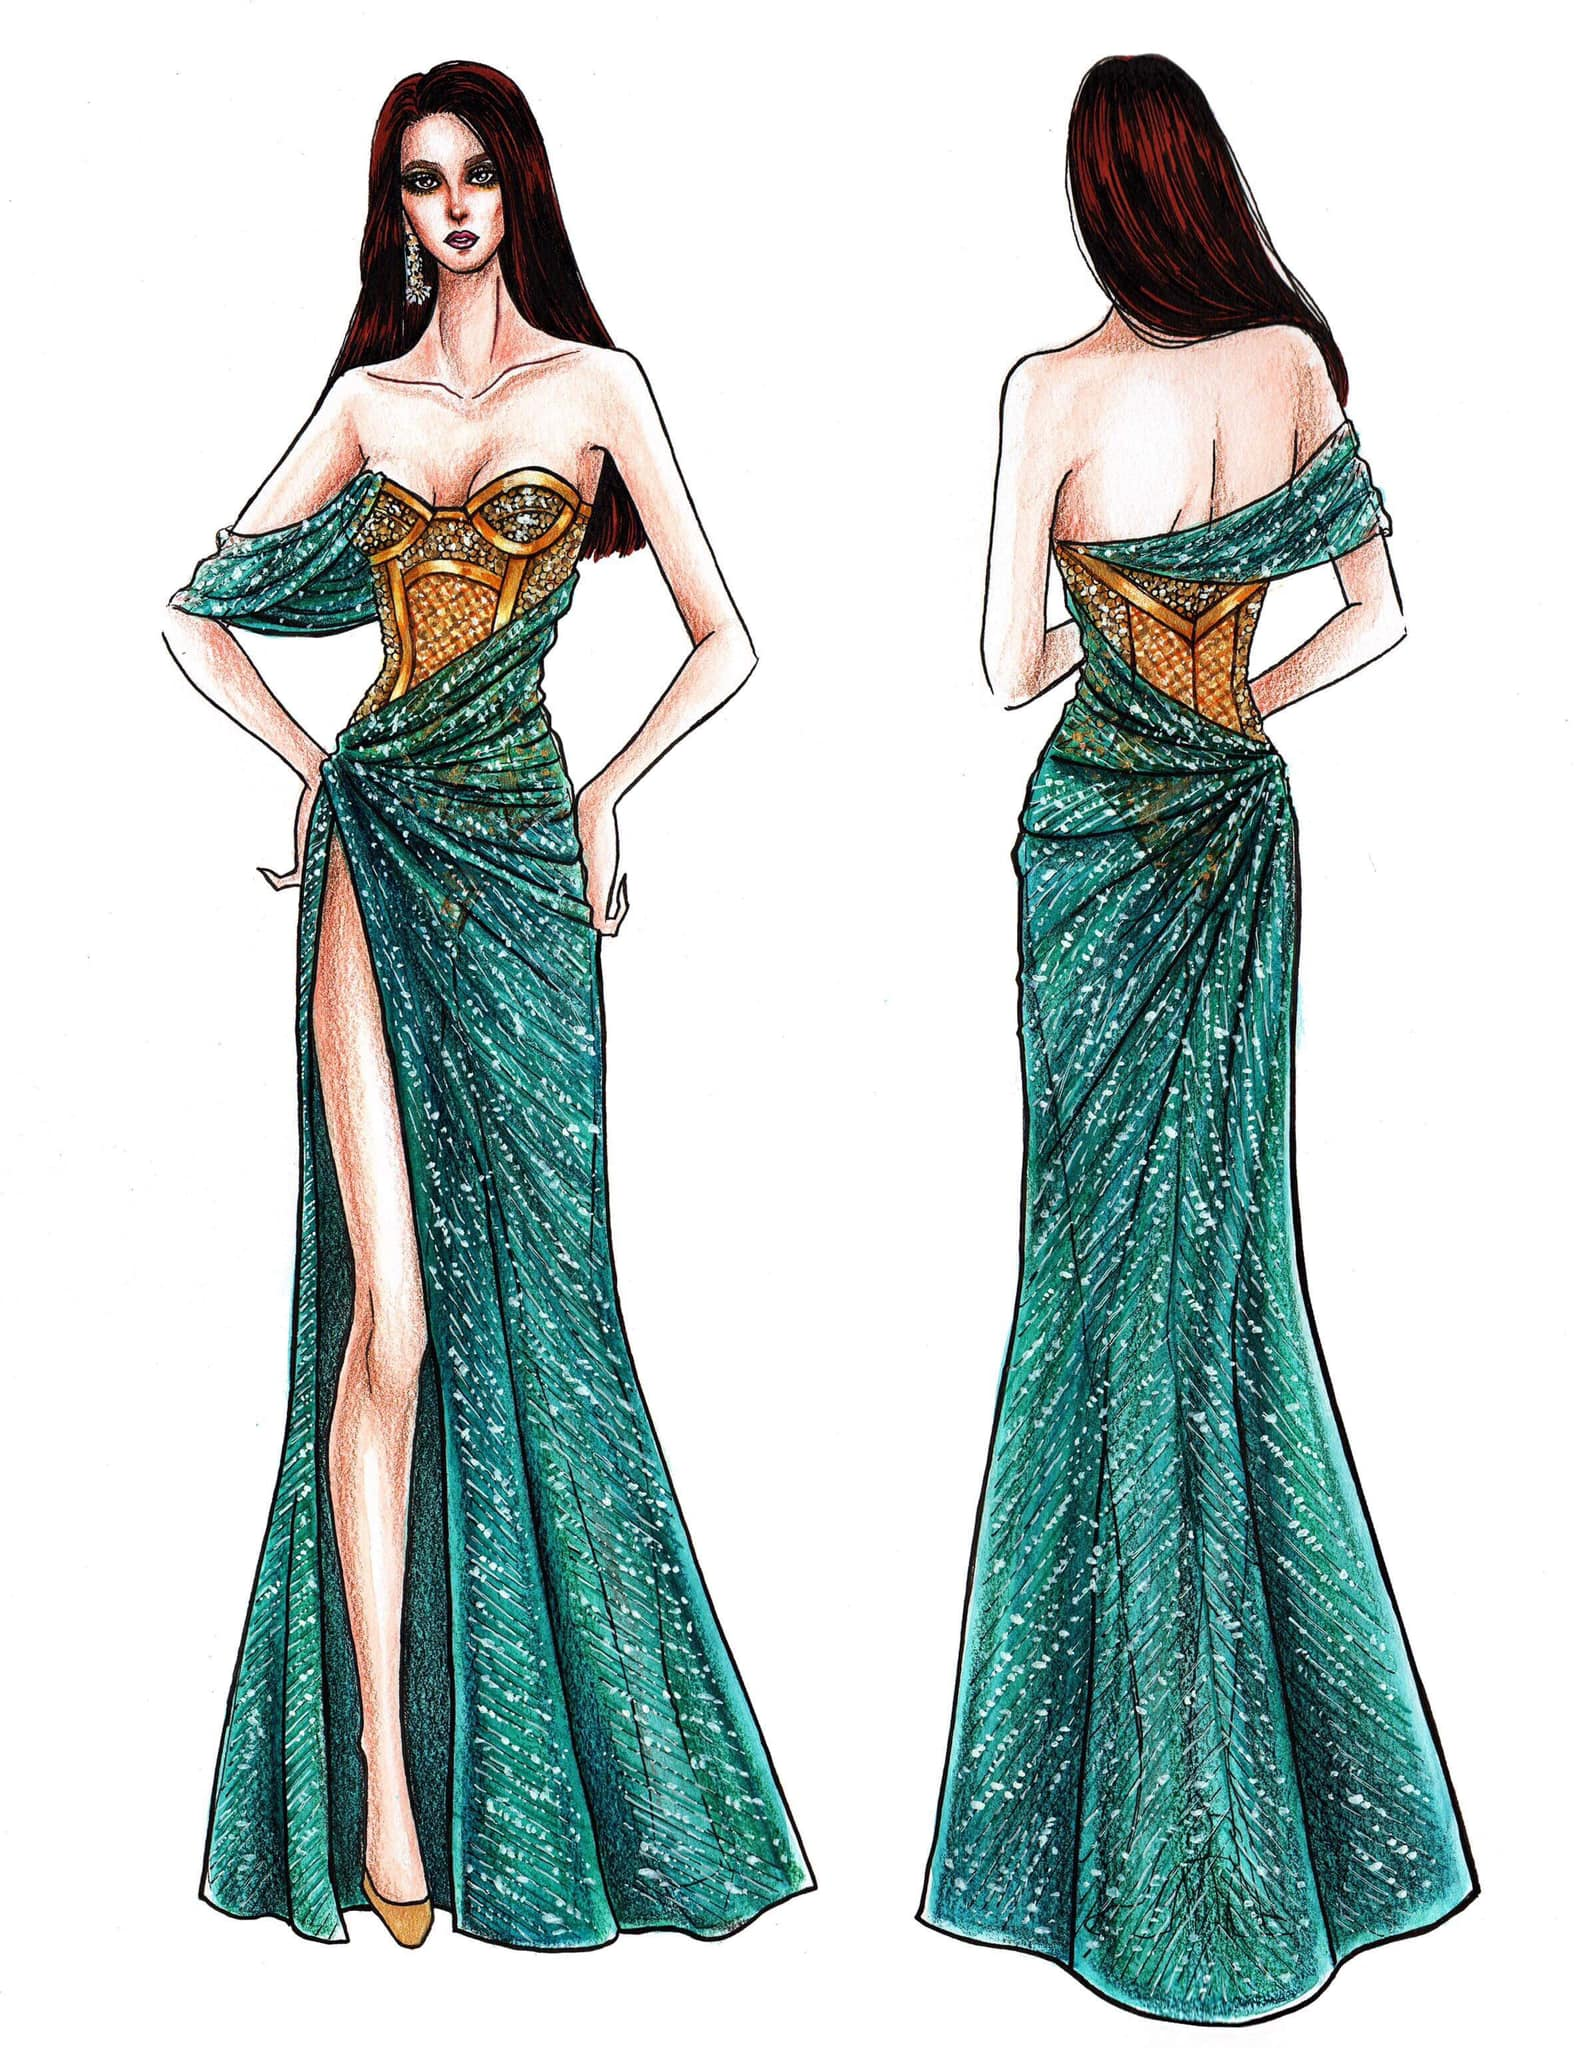 """In photos: Designer Mak Tumang releases sketches of """"third gown"""" Catriona Gray planned to wear at Miss Universe pageant"""